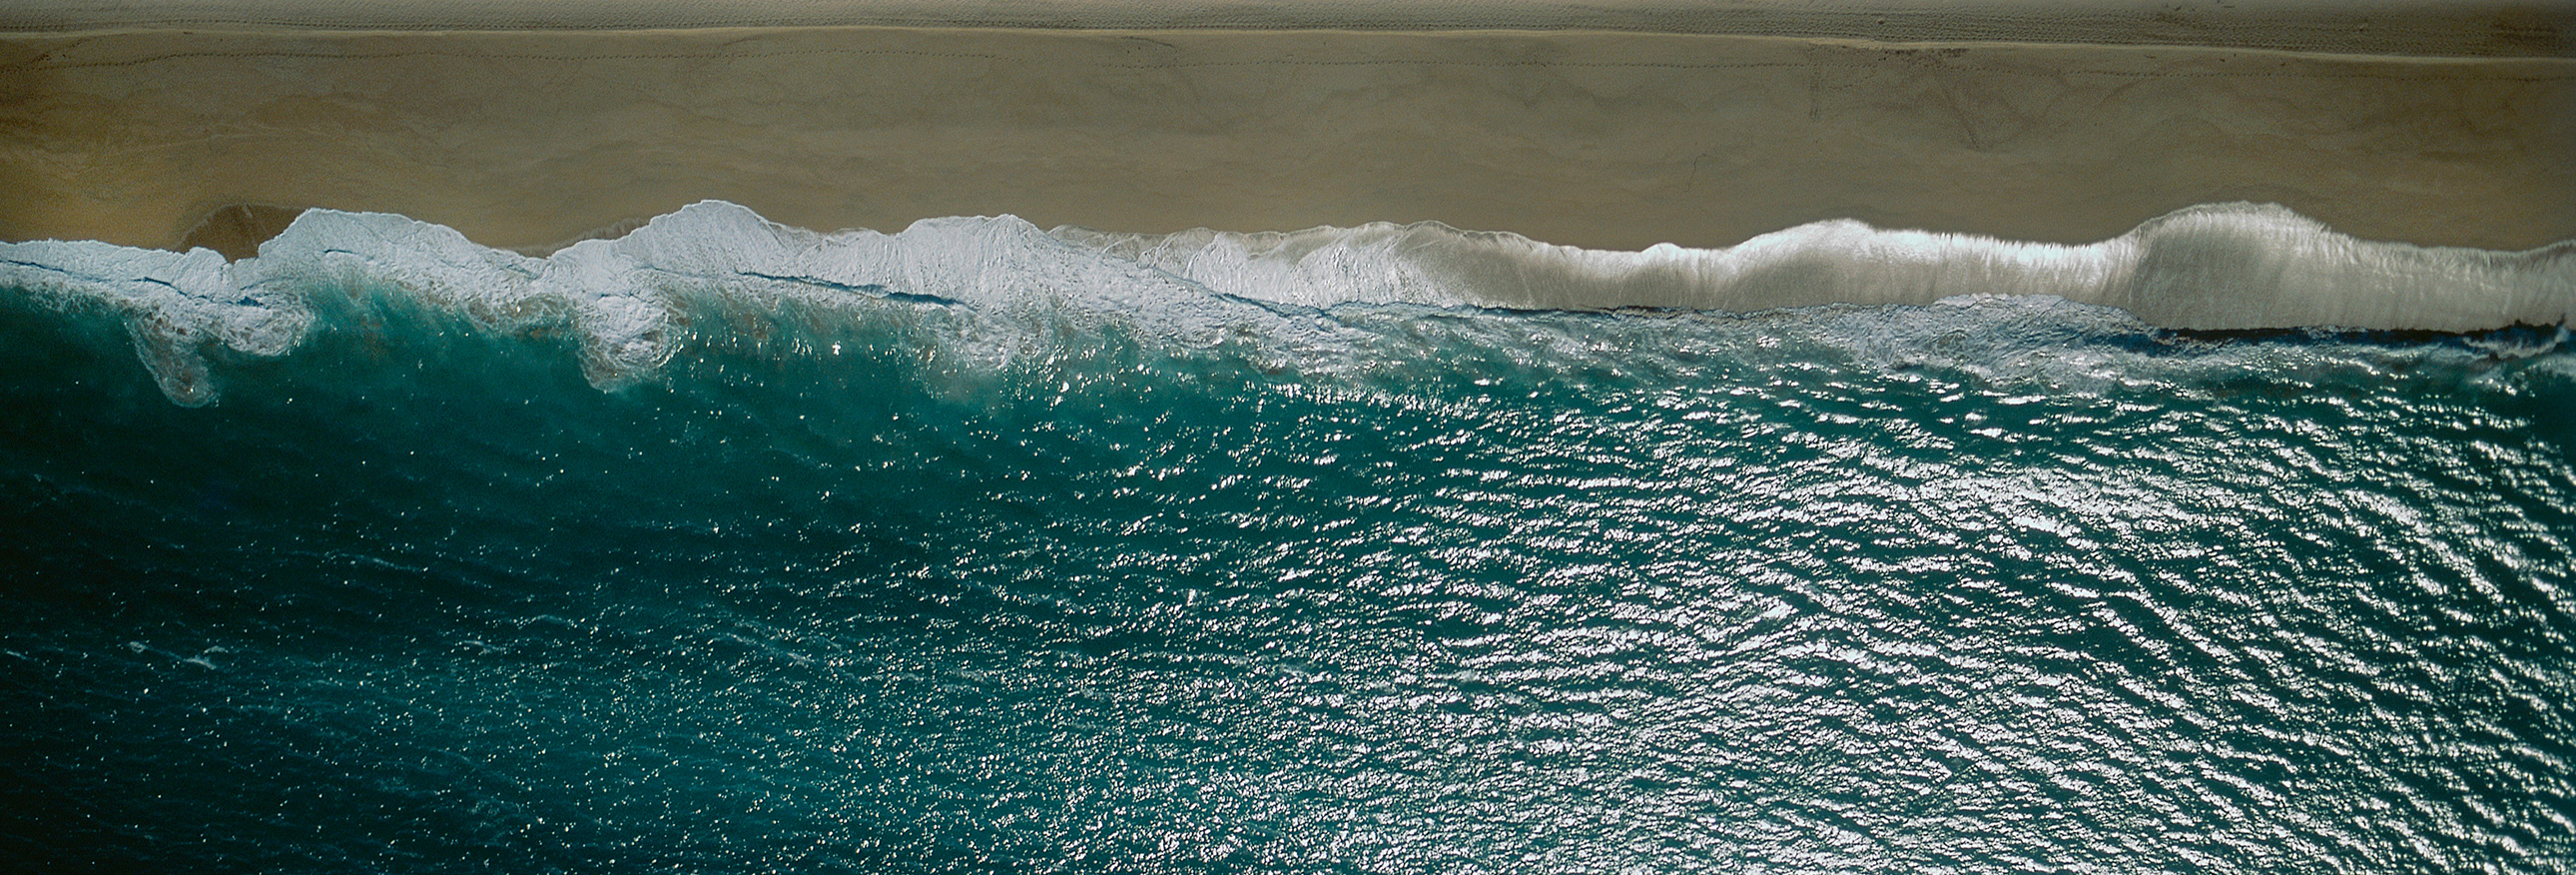 aerial view of a wave crashing on beach